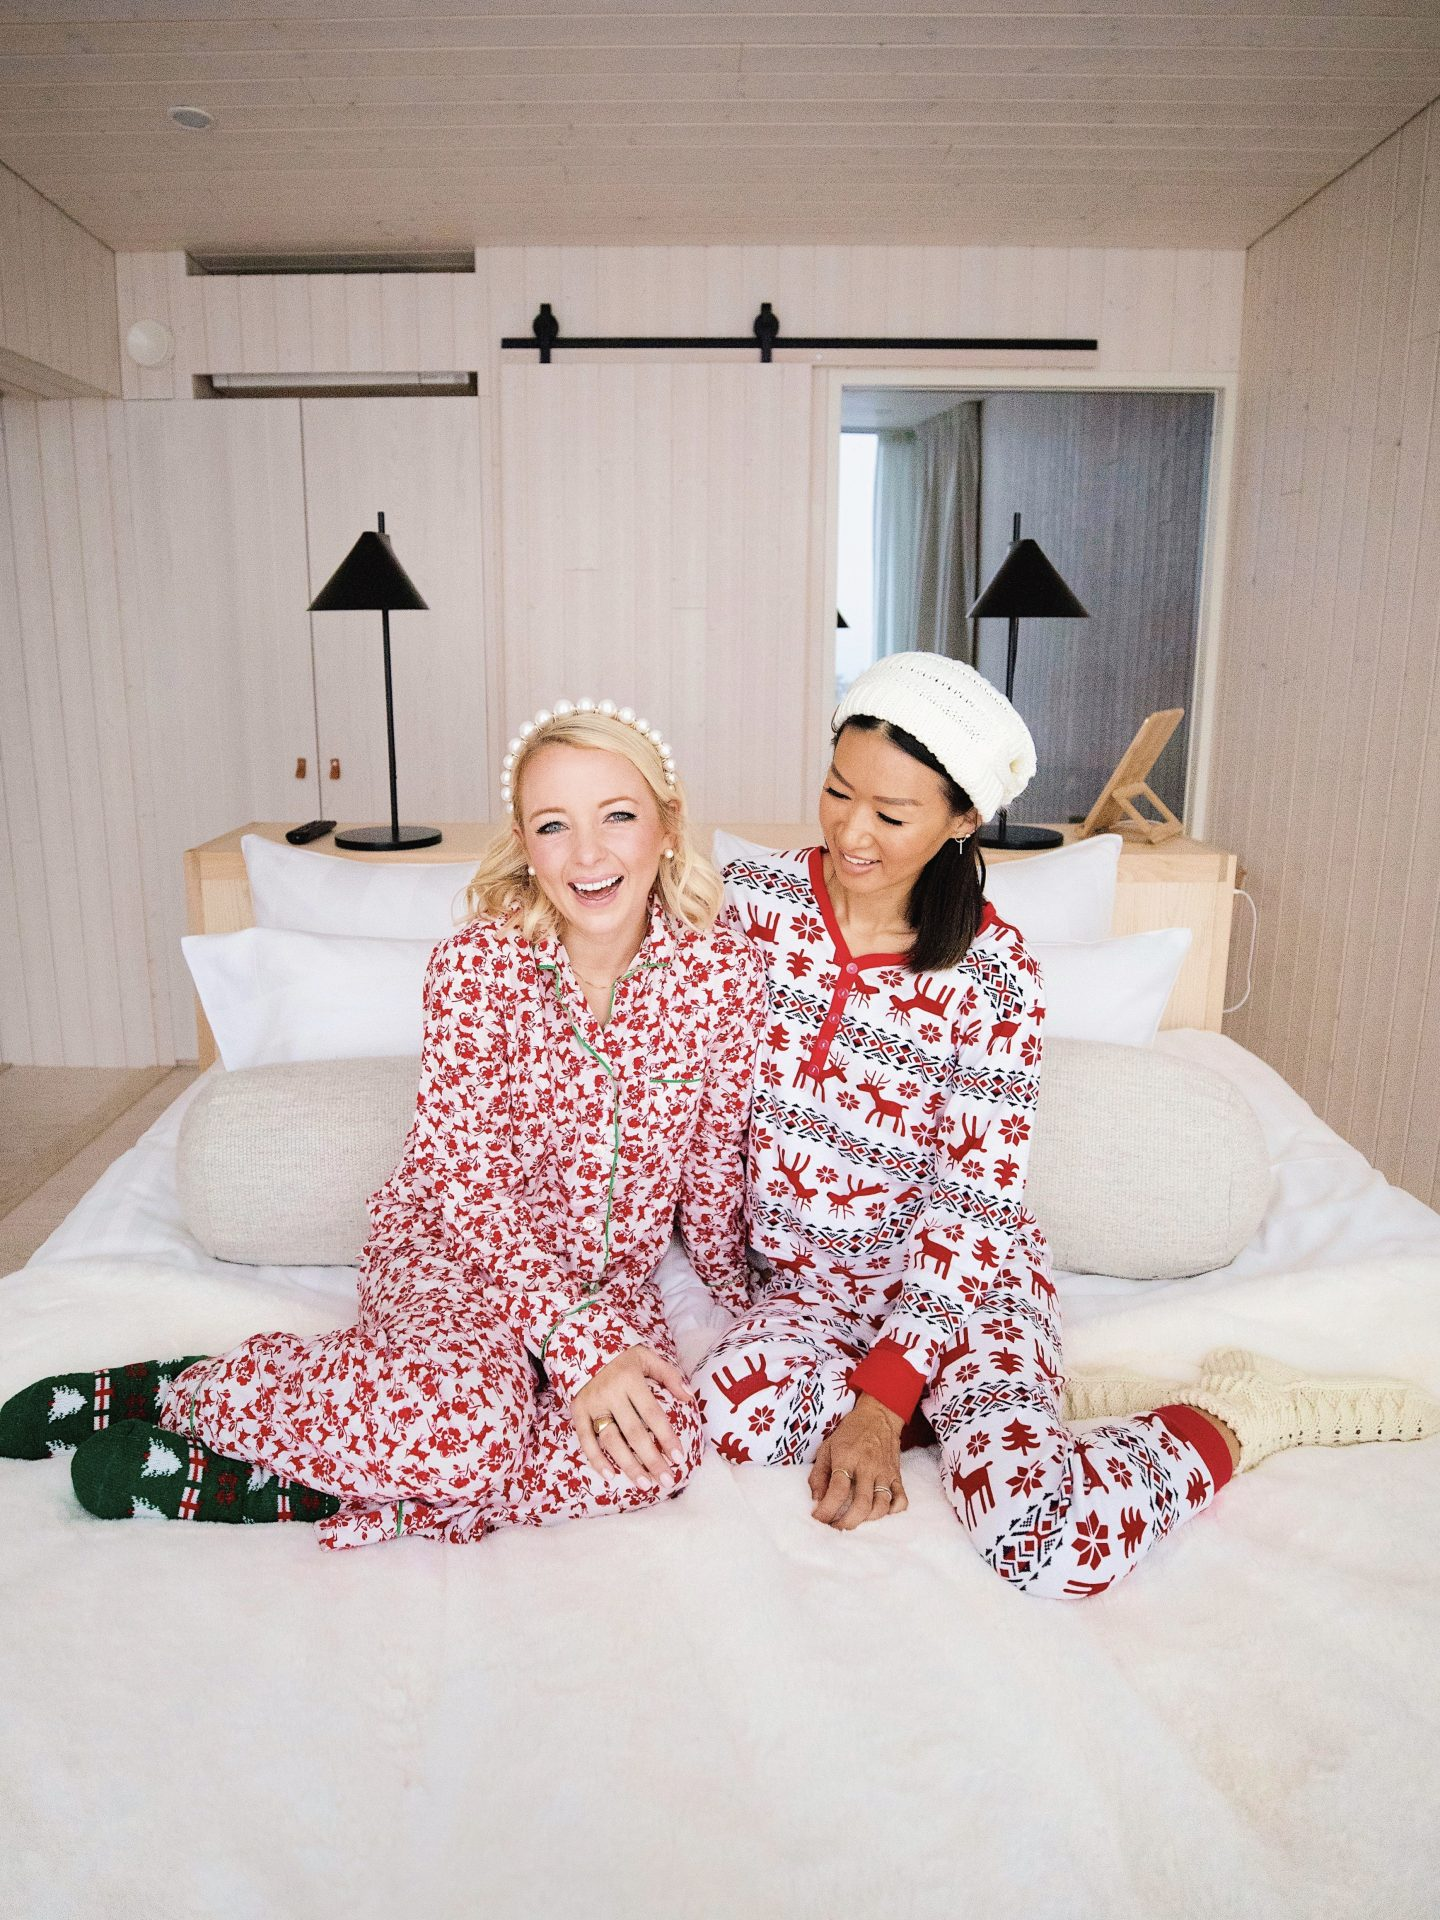 Travel guide to Lapland, Finland and Rovaniemi, Finland with the Arctic Treehouse Hotel Review